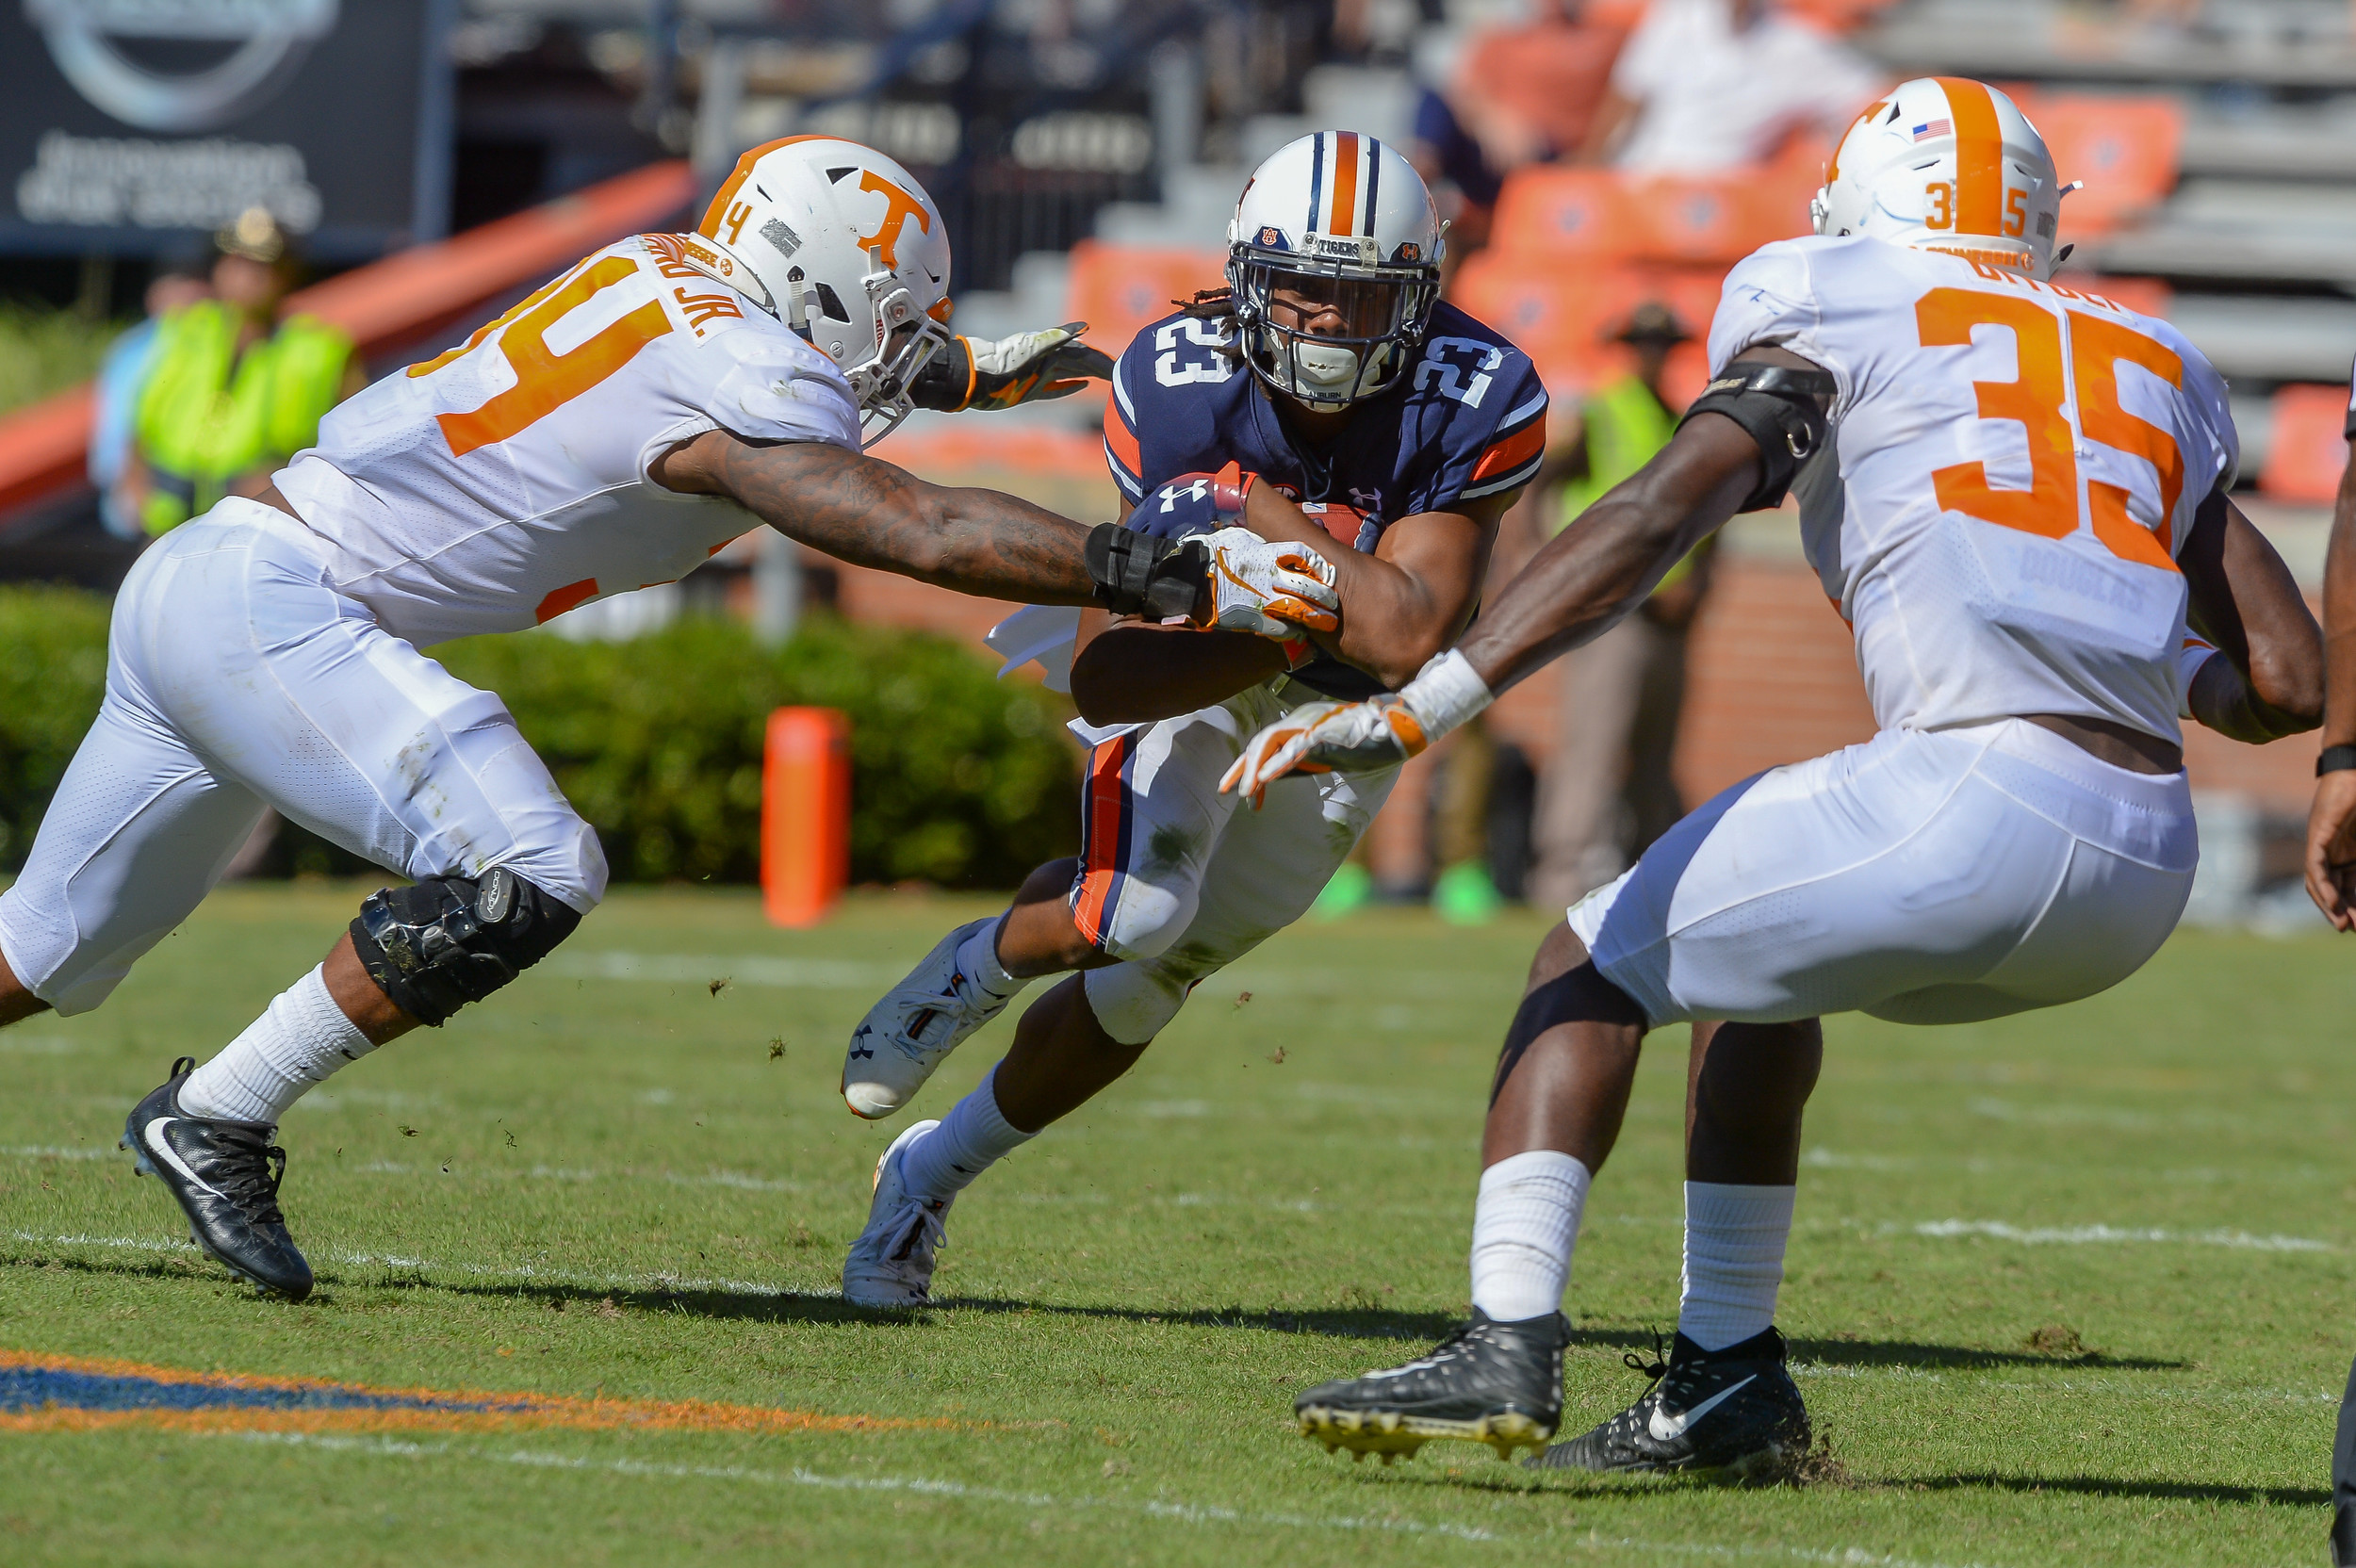 Tennessee Volunteers linebacker Darrin Kirkland Jr. (34) and linebacker Daniel Bituli (35) converge on Auburn Tigers wide receiver Ryan Davis (23) during the second half of Saturday's game, at Jordan-Hare Stadium in Auburn, AL. Daily Mountain Eagle -  Jeff Johnsey